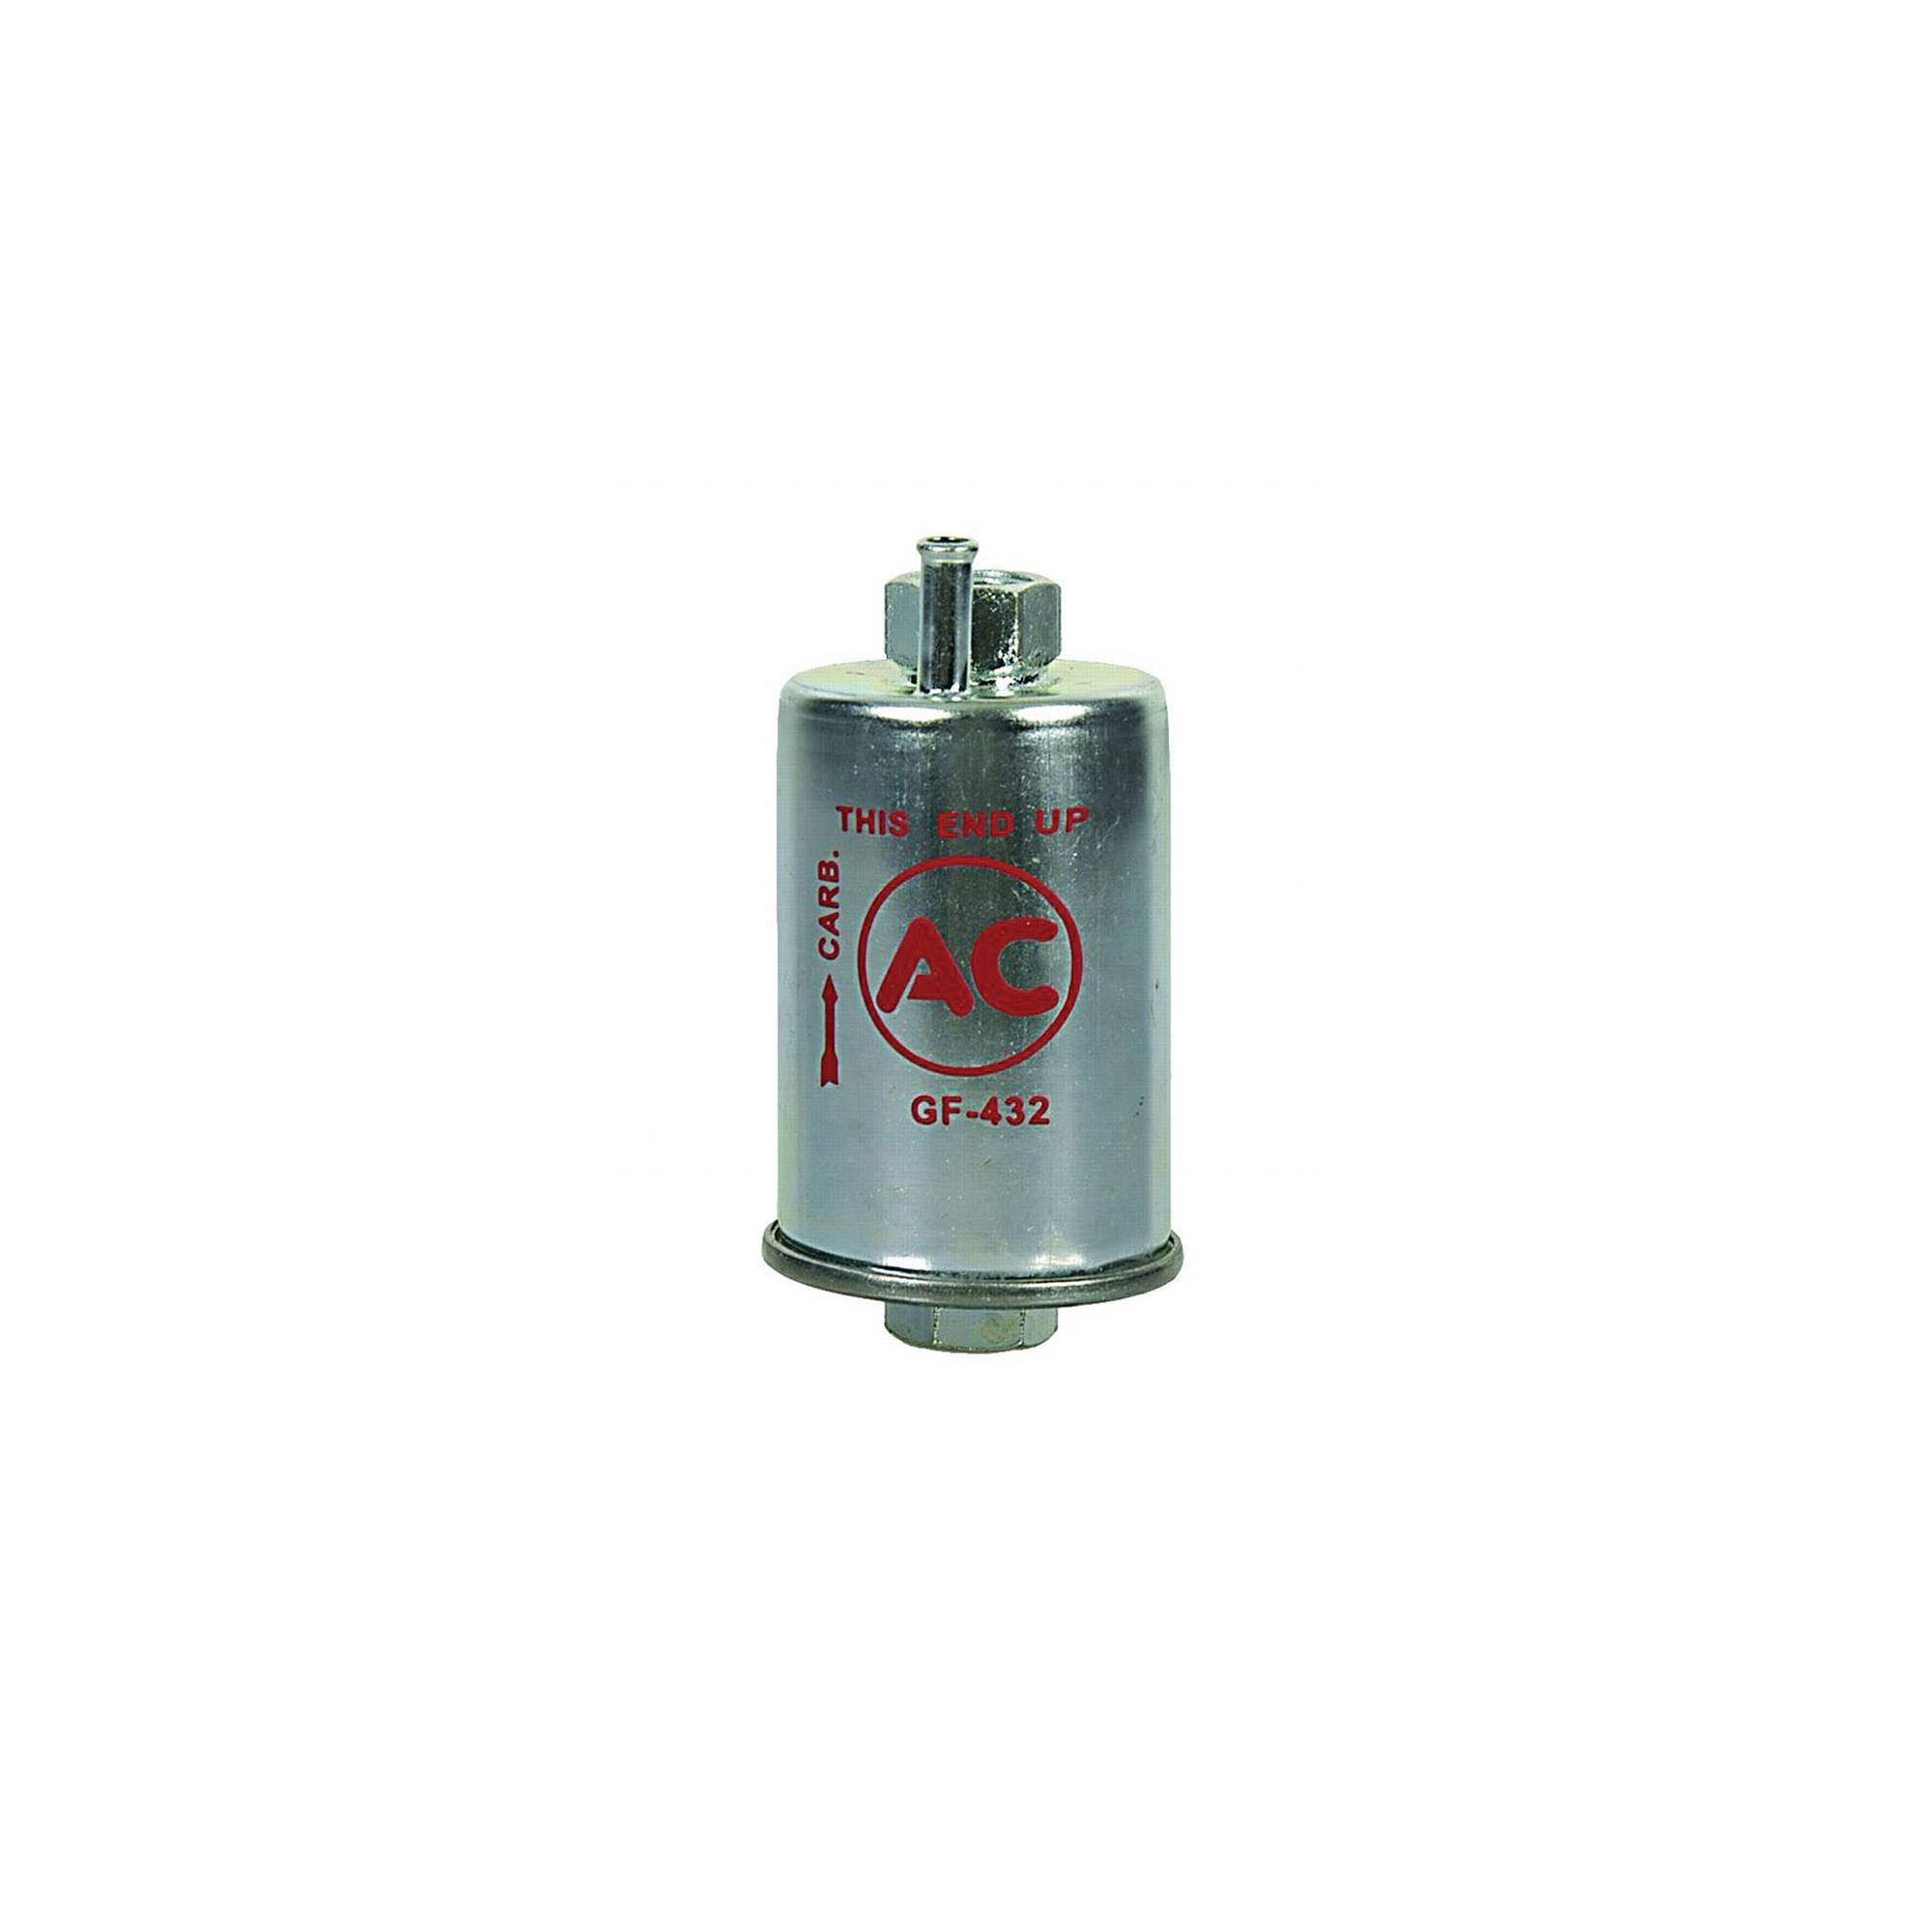 hight resolution of eckler s premier products 40324979 chevy fuel filter gf432 for cars with 1 4 return line walmart com